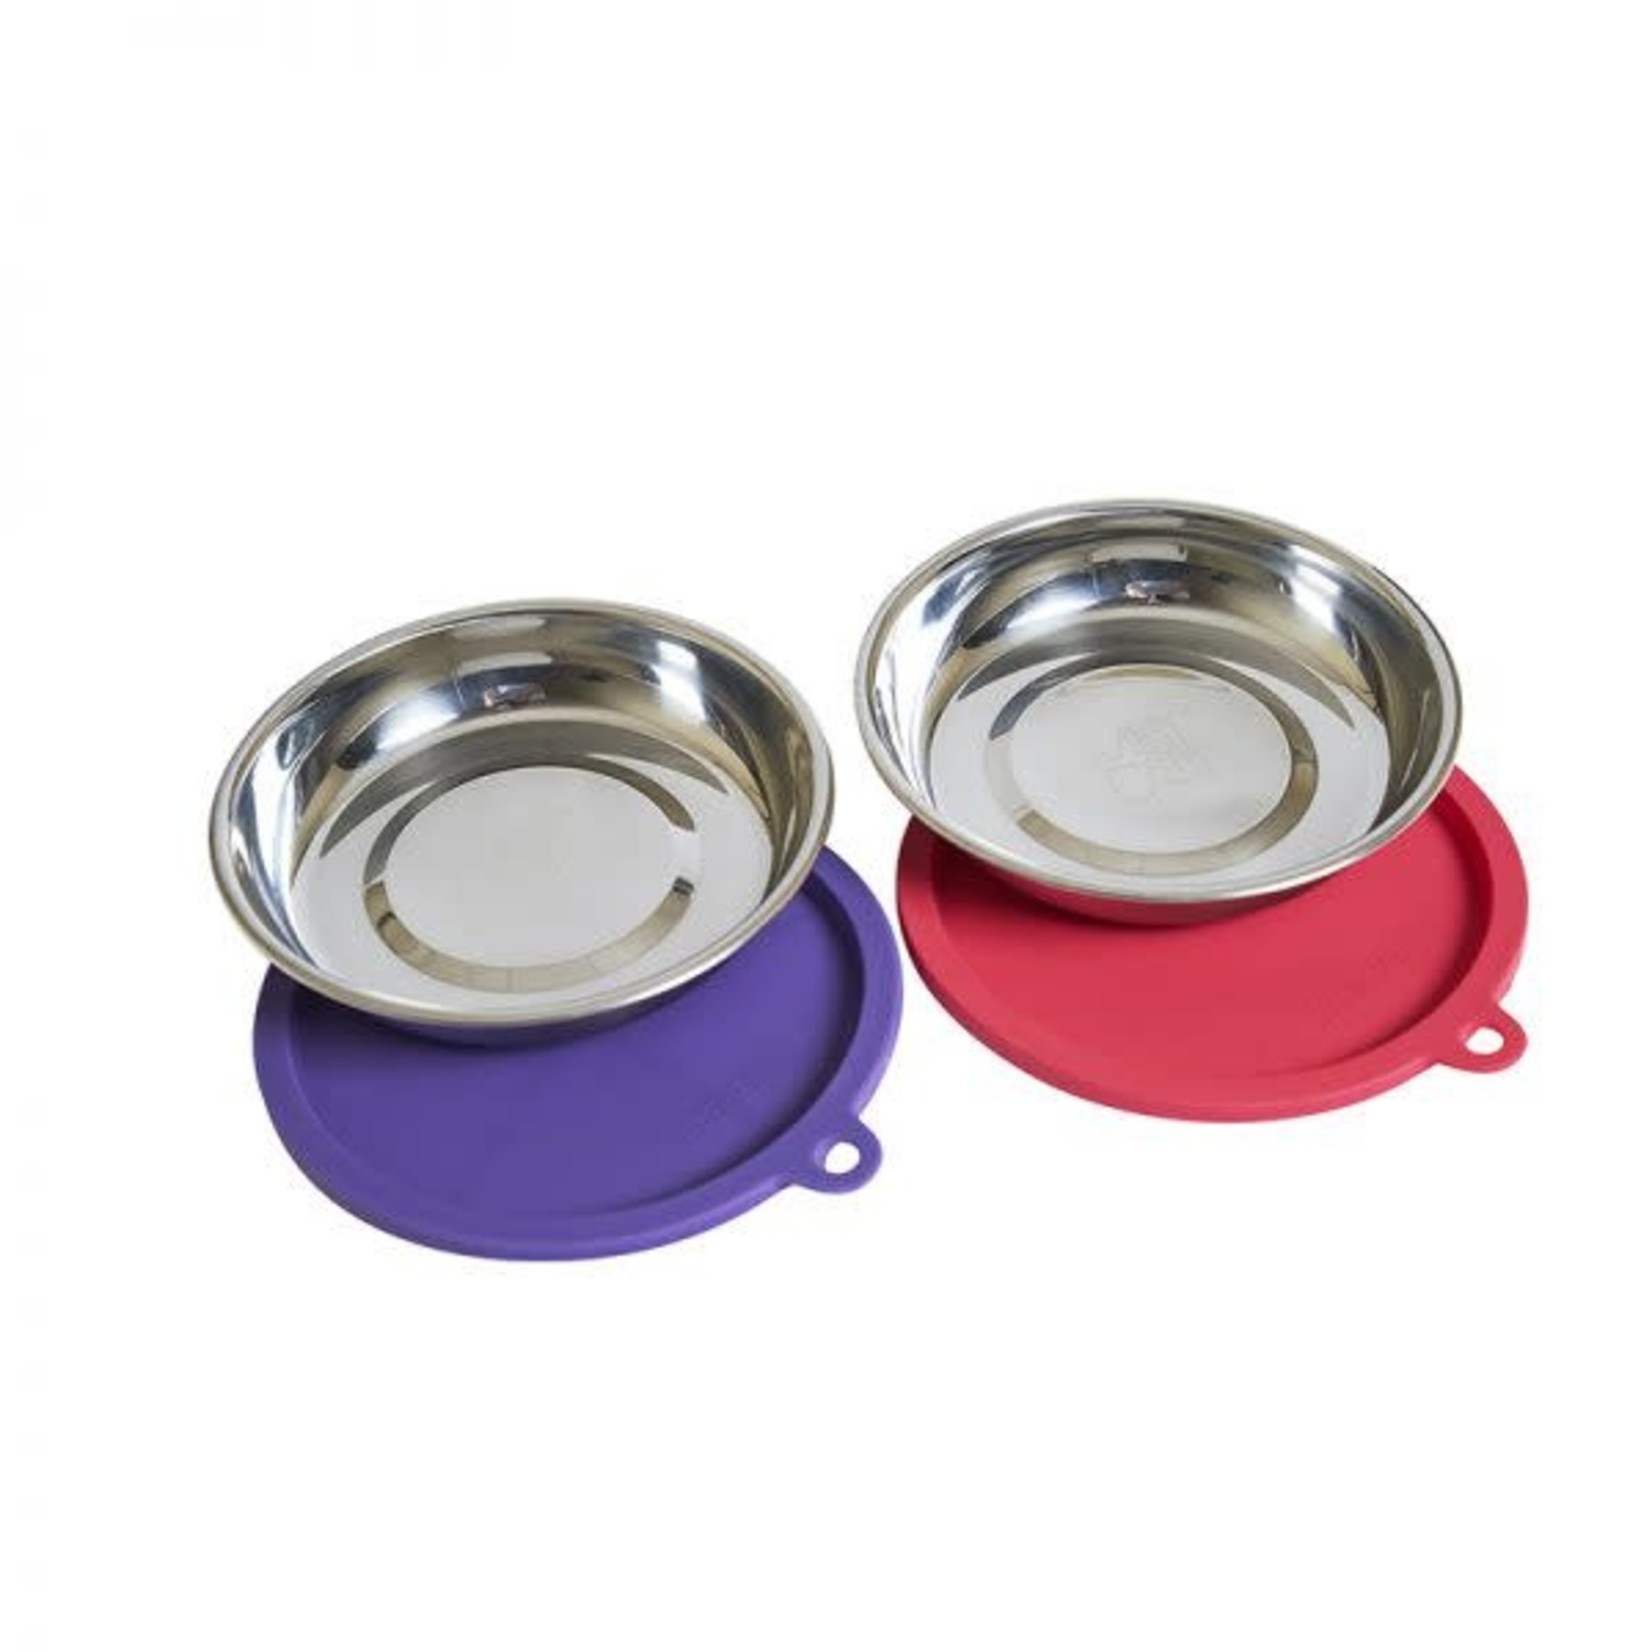 Messy Mutts Messy Mutts Cat Bowl & Lid 2 Pack, 1.75 CUP